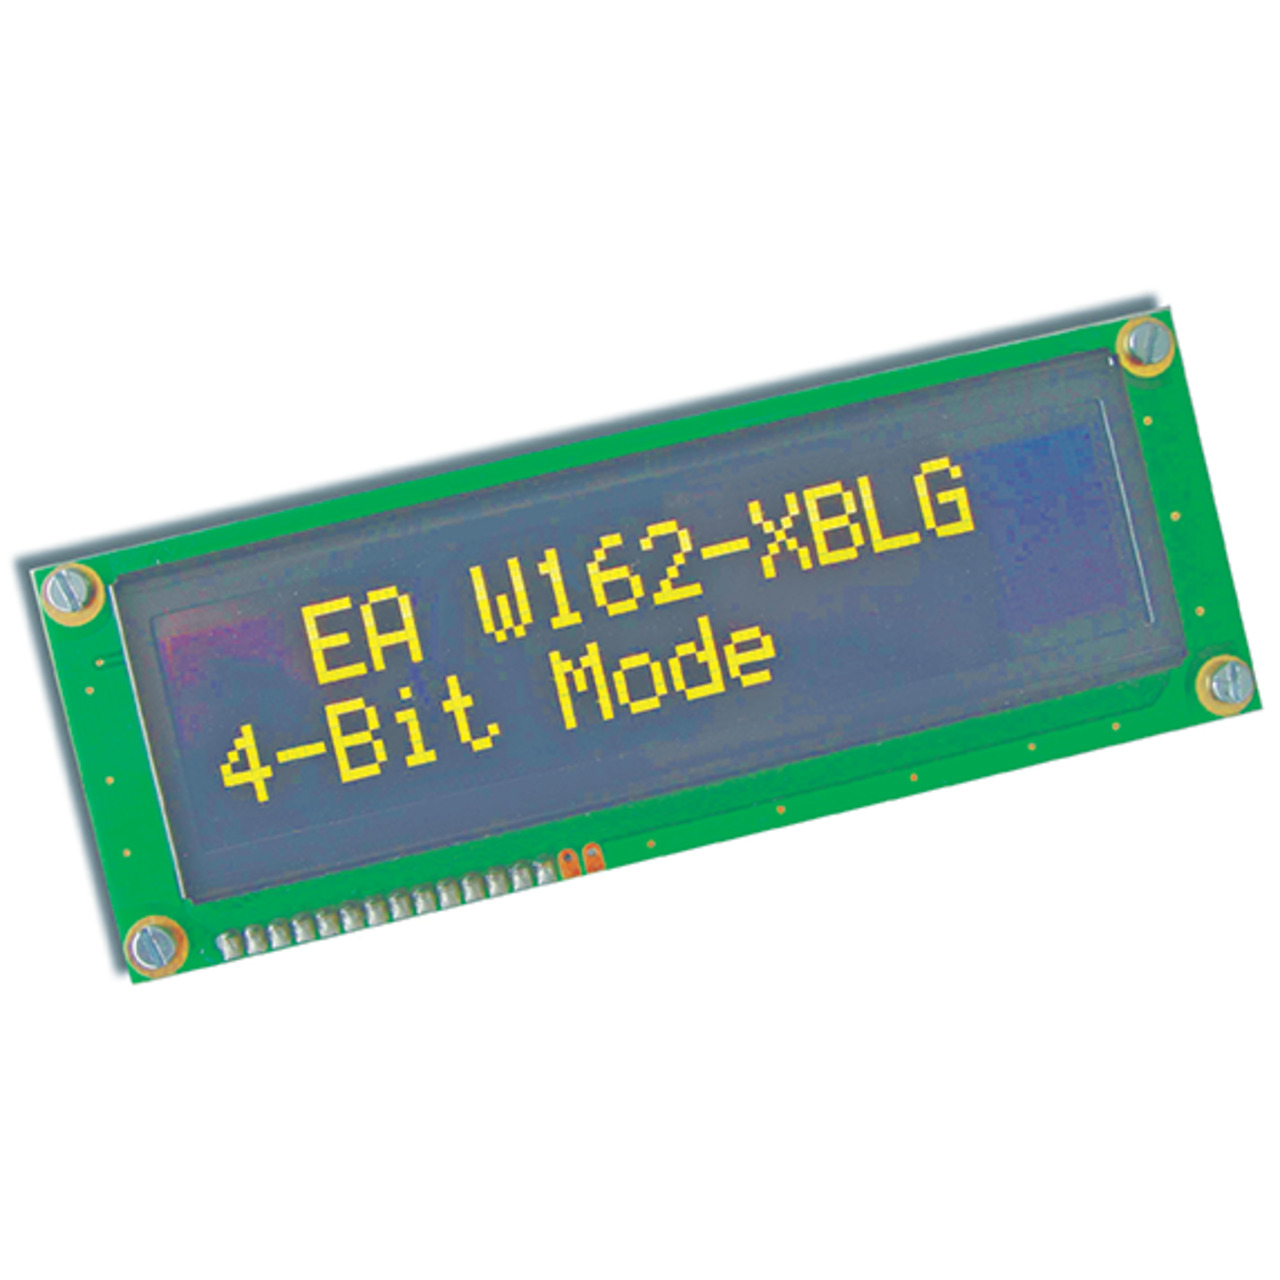 Electronic Assembly OLED-Display EAW162-XBLG 2x16- character 8-9 mm- gelb